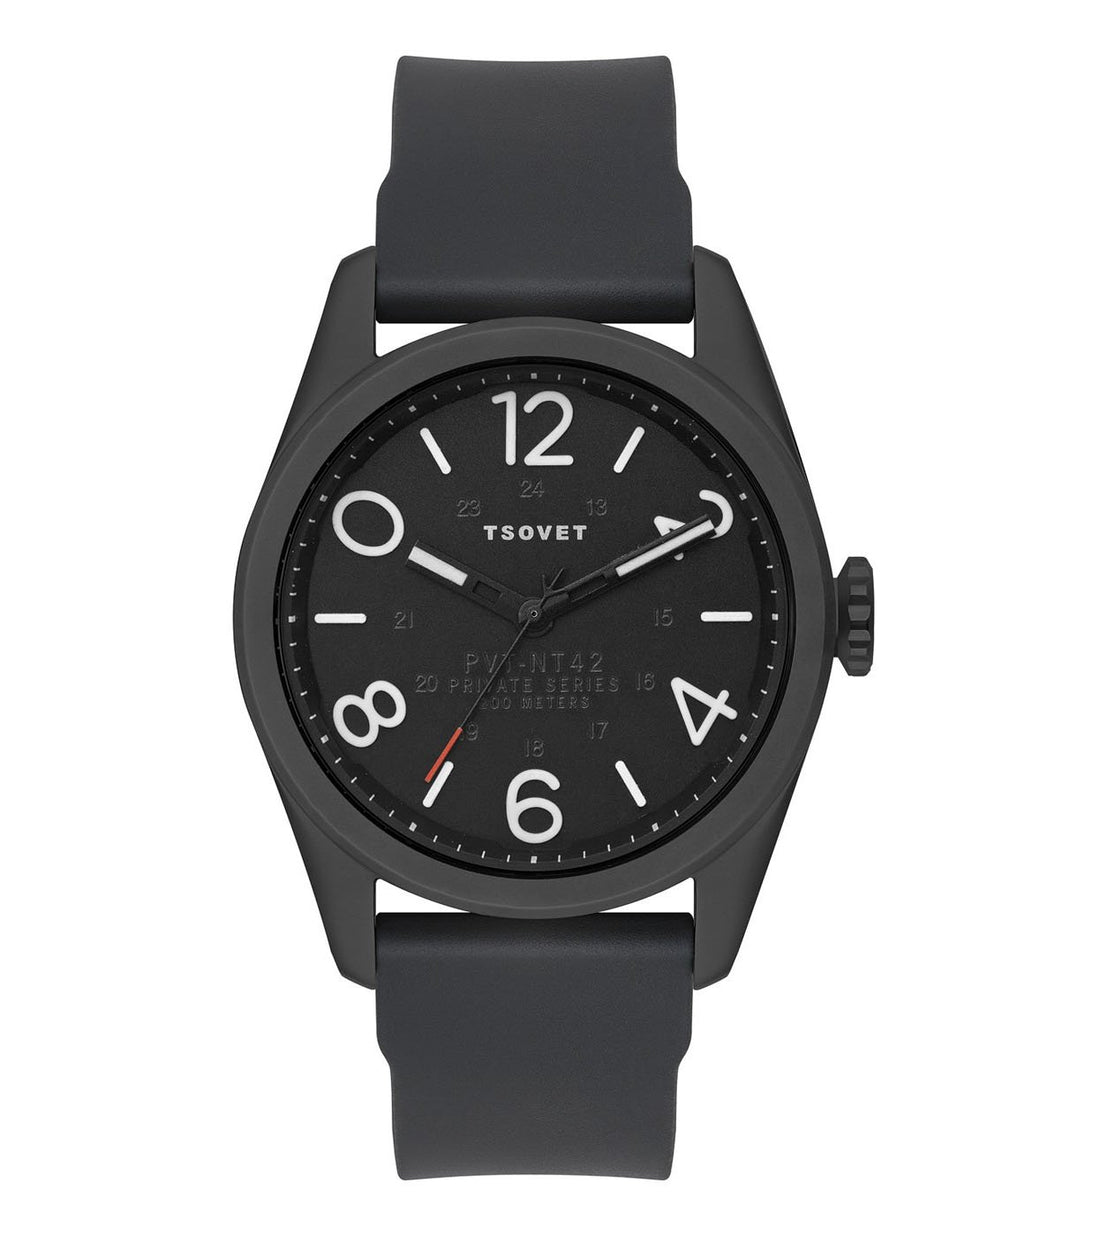 Tsovet JPT-NT42 - Black - Watches - Iron and Resin